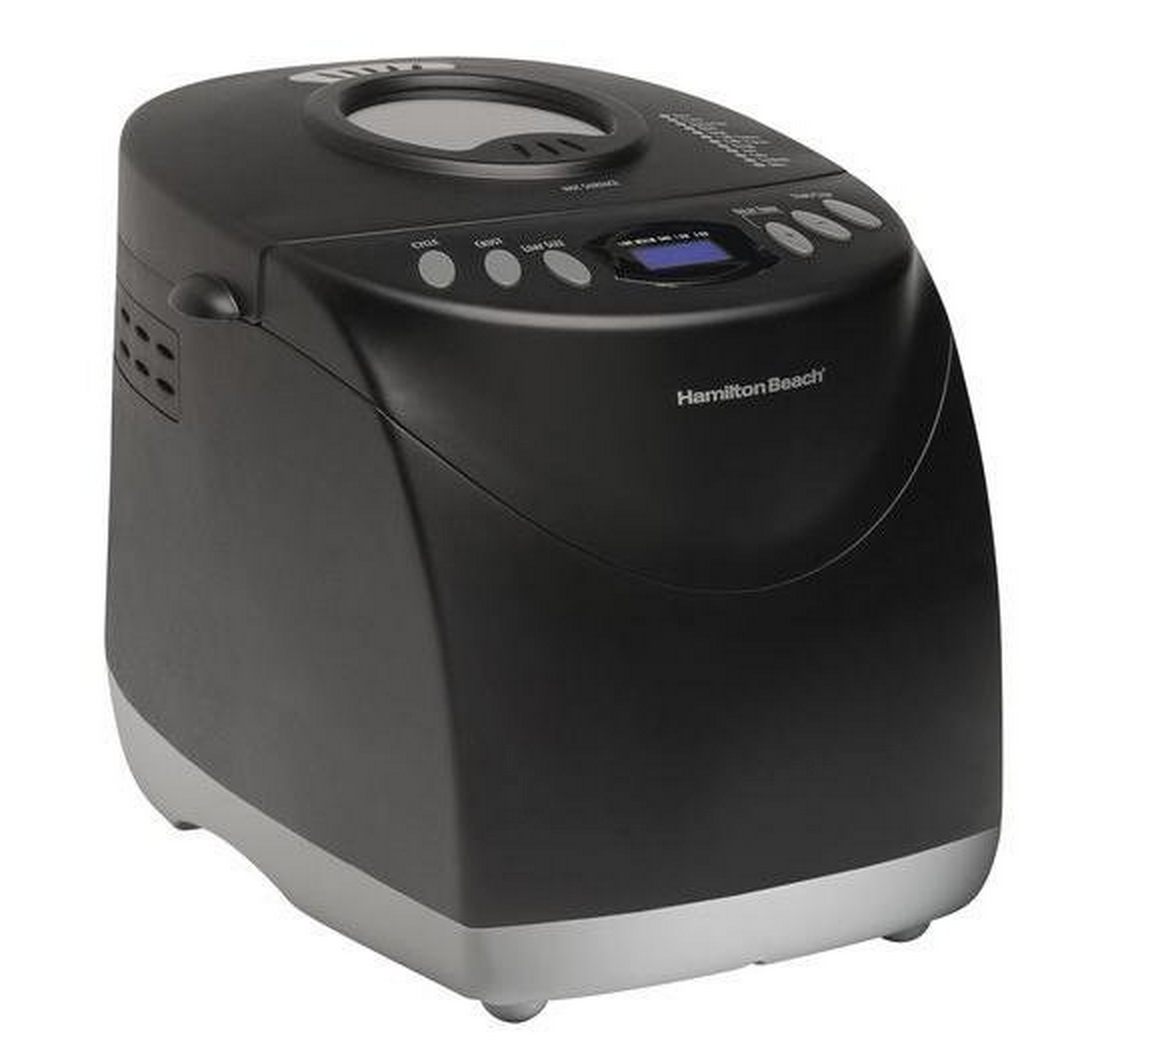 Highly Rated Hamilton Beach HomeBaker Breadmaker Only $53.99 Shipped!